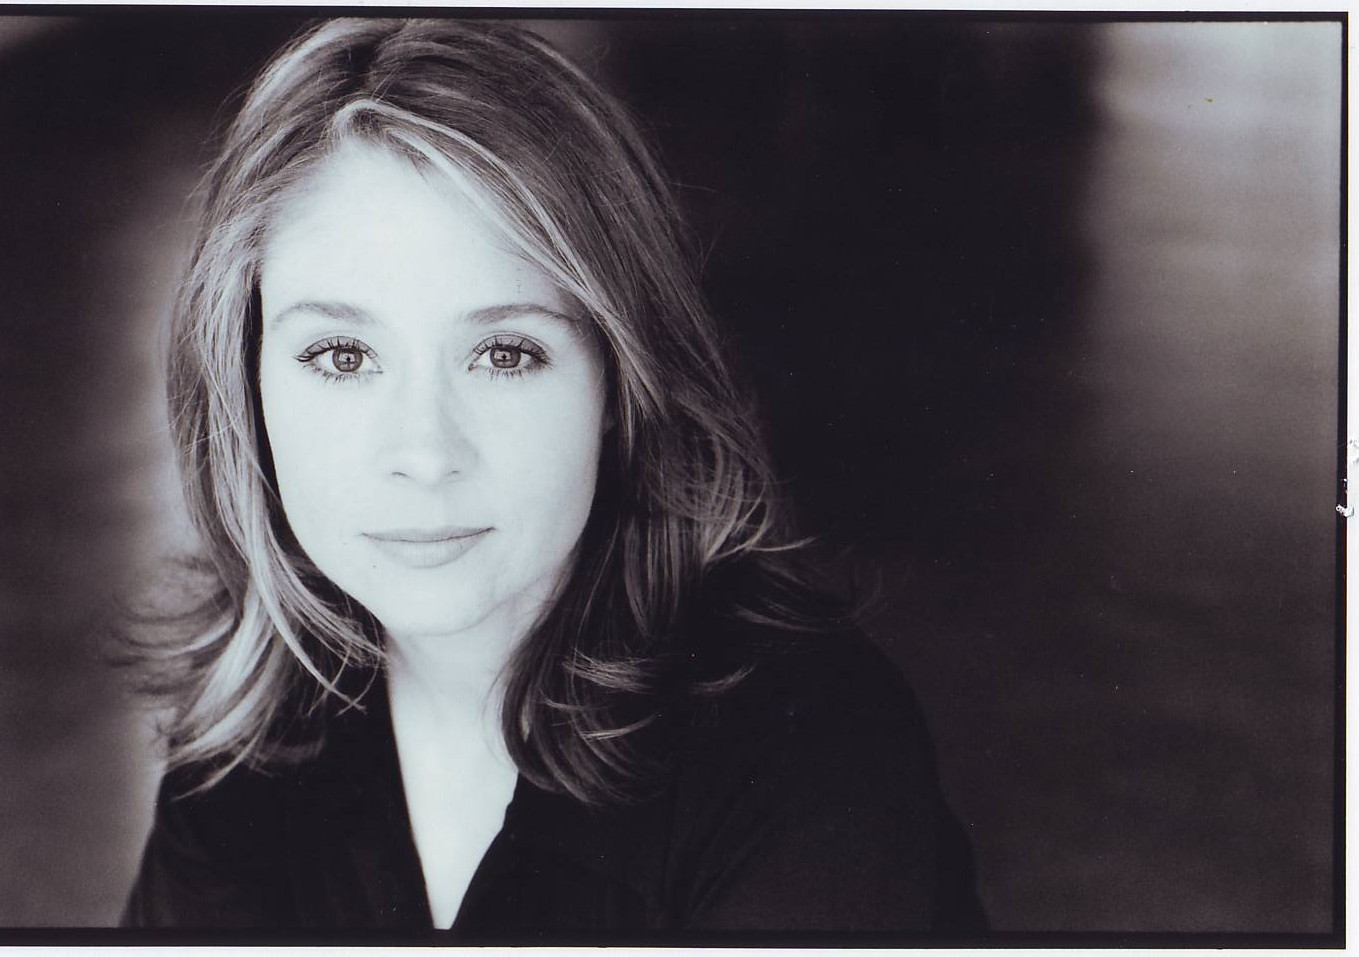 megan follows jonathan crombie